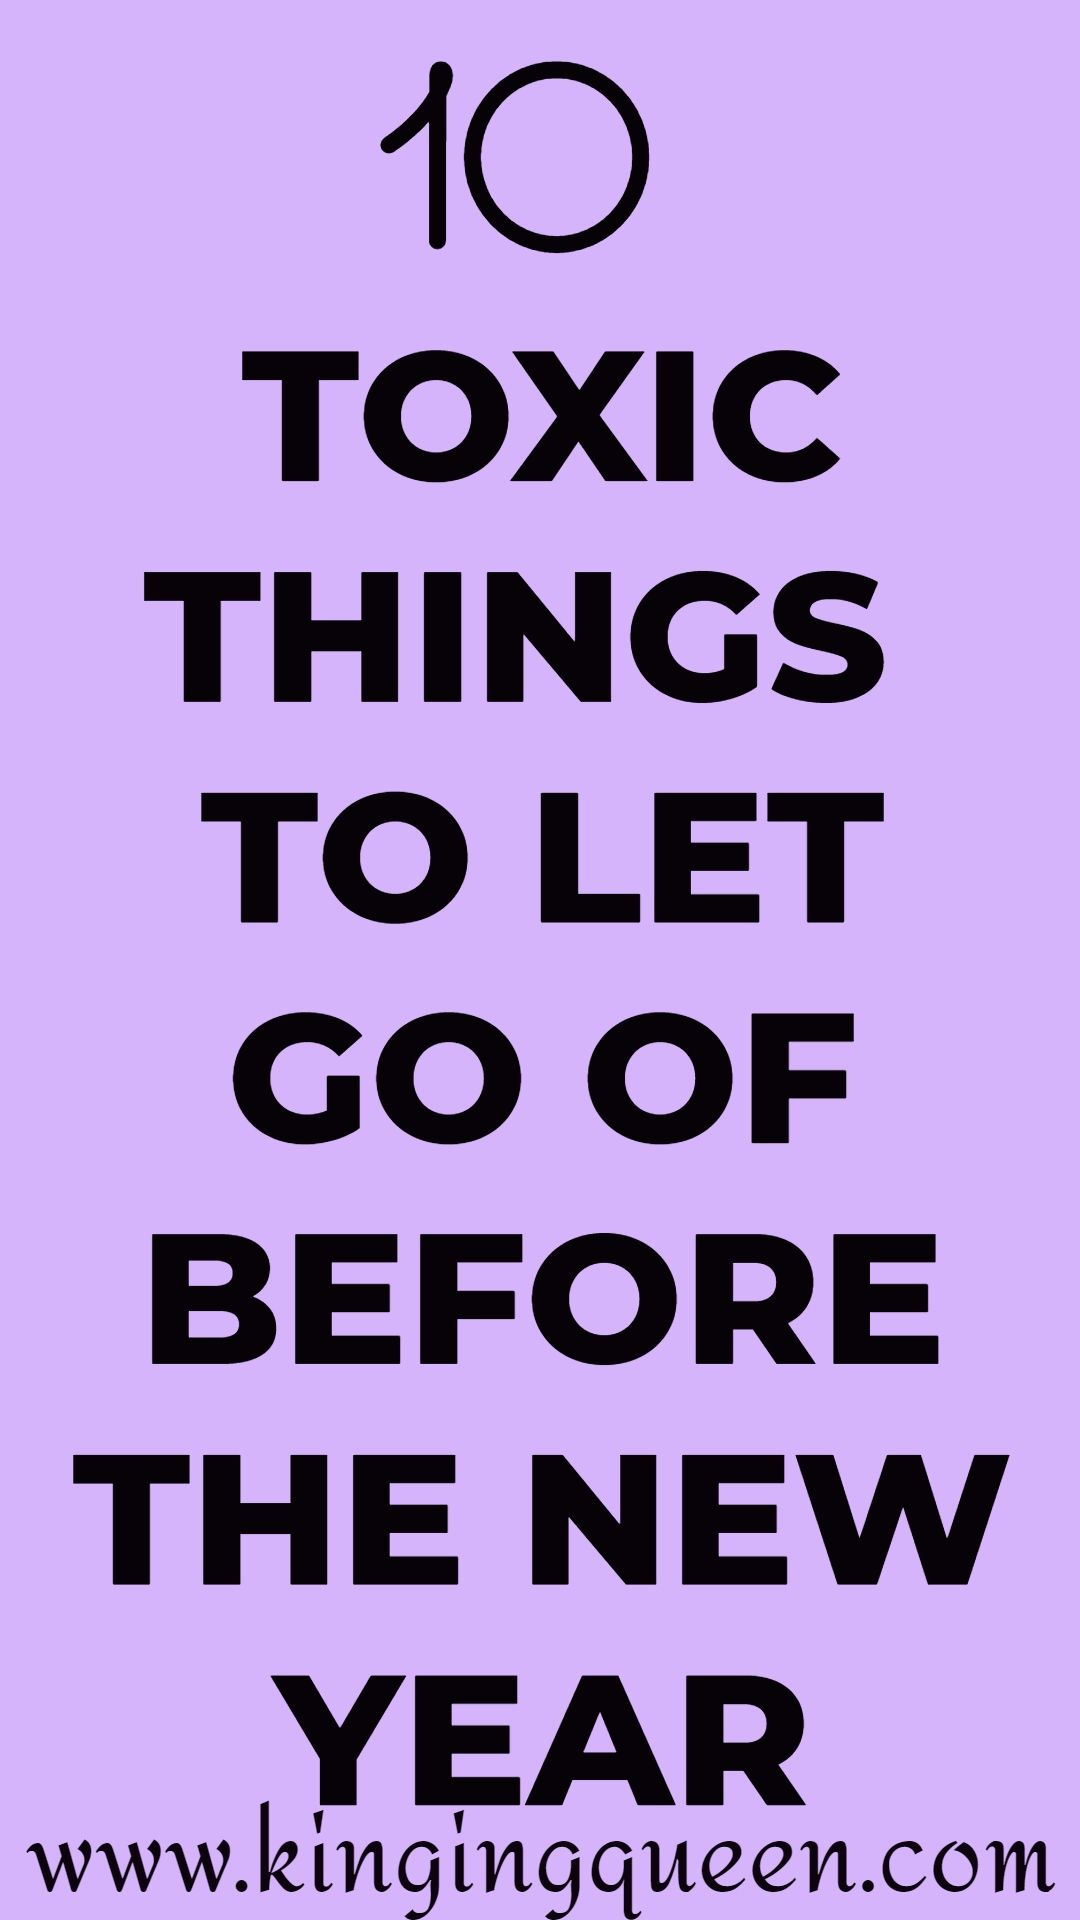 10 Toxic Things You Need To Let Go Of Before The New Year Feelings And Emotions Break Bad Habits Self Help